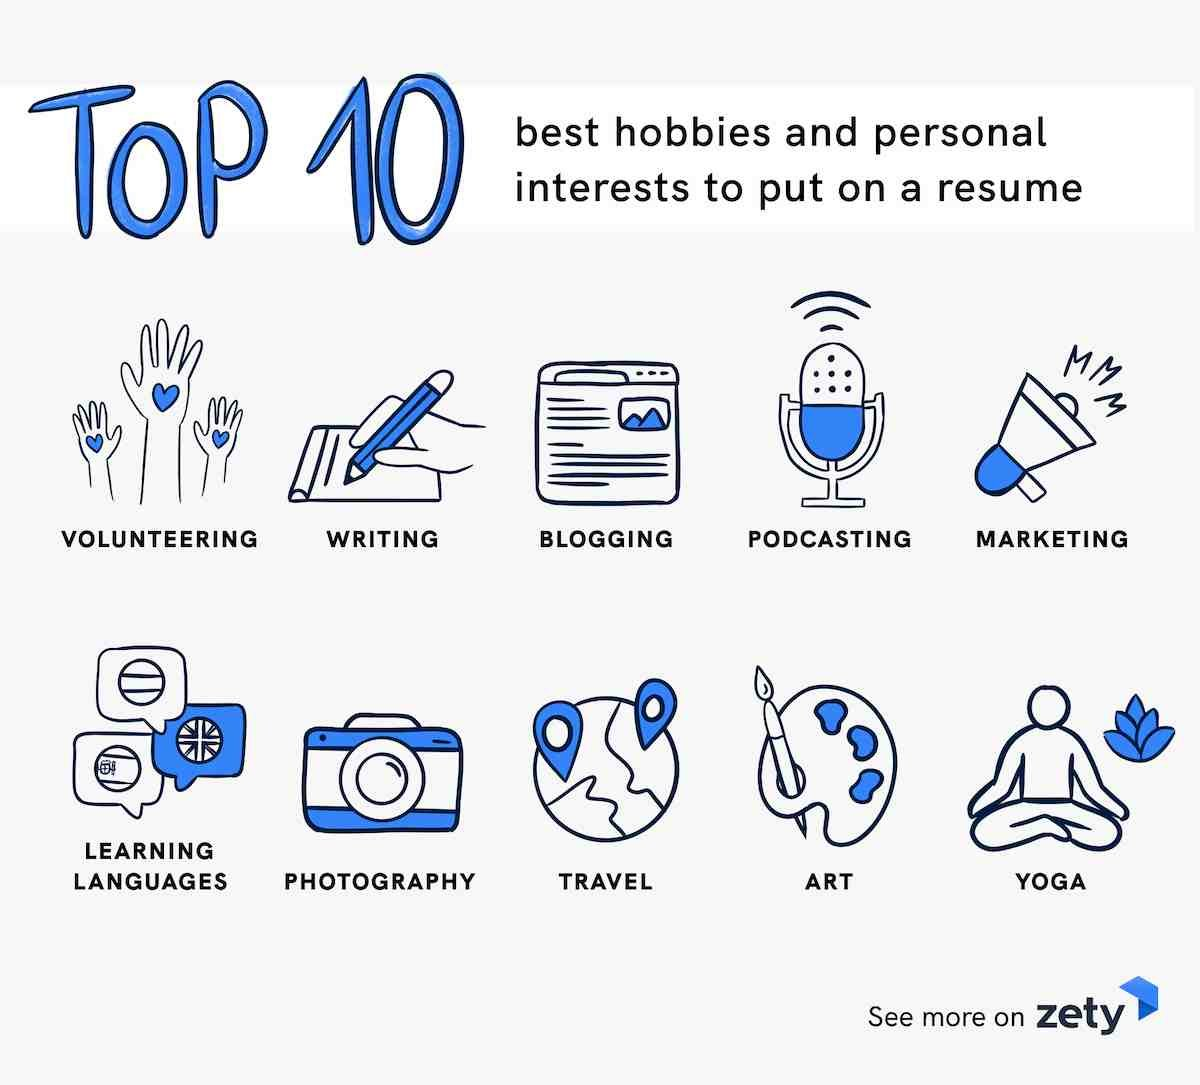 of hobbies and interests for resume cv examples that look good on top best personal to Resume Interests That Look Good On A Resume